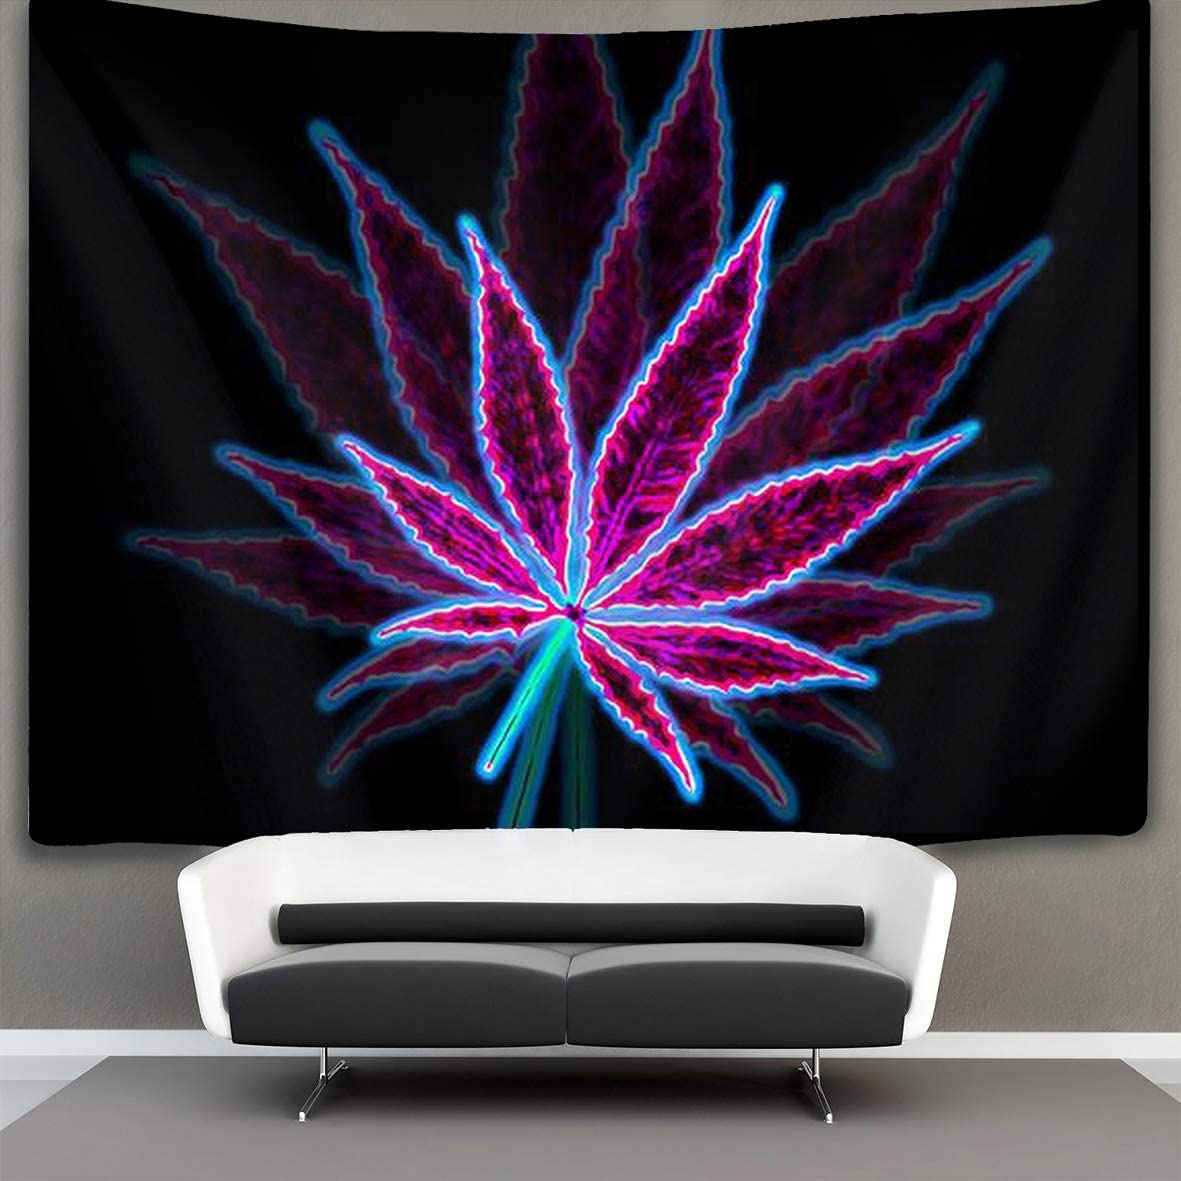 Tapestry Wall Hanging Marijuana Weed Leaf Purple Wall Tapestry with Art Nature Home Decorations for Living Room Bedroom Dorm Decor 60 X 90